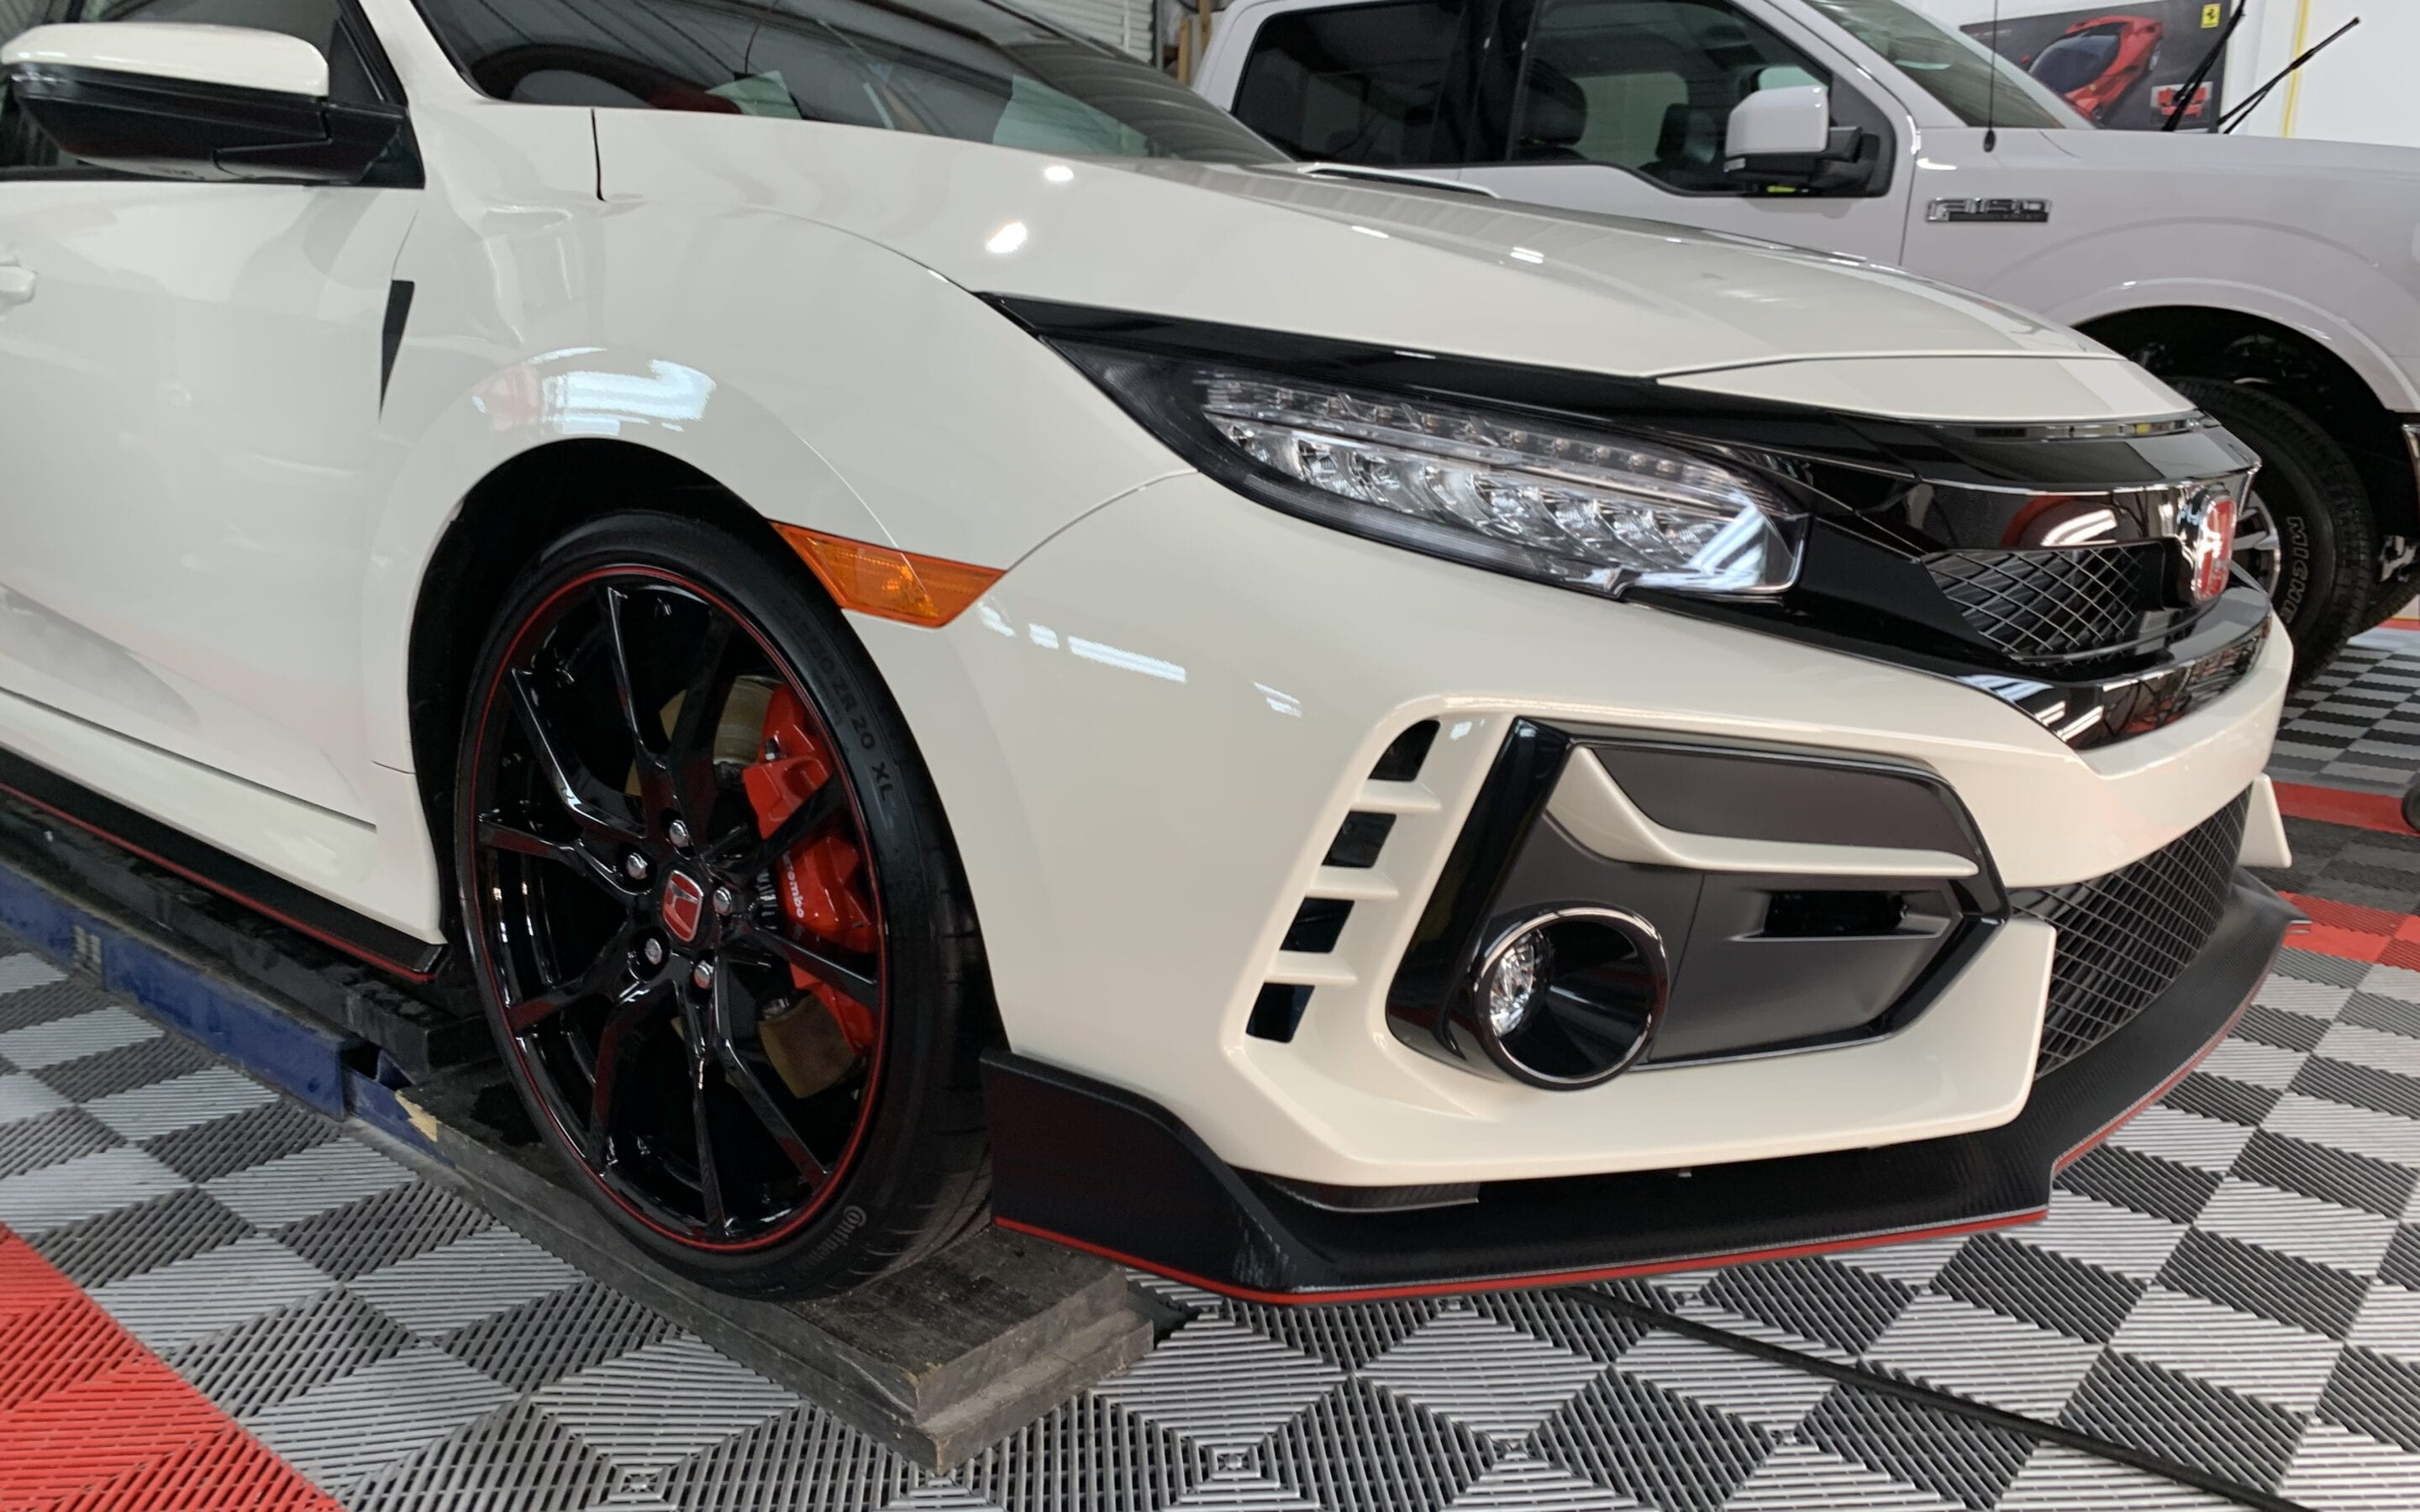 Ceramic Coating of a 2020 Honda Civic